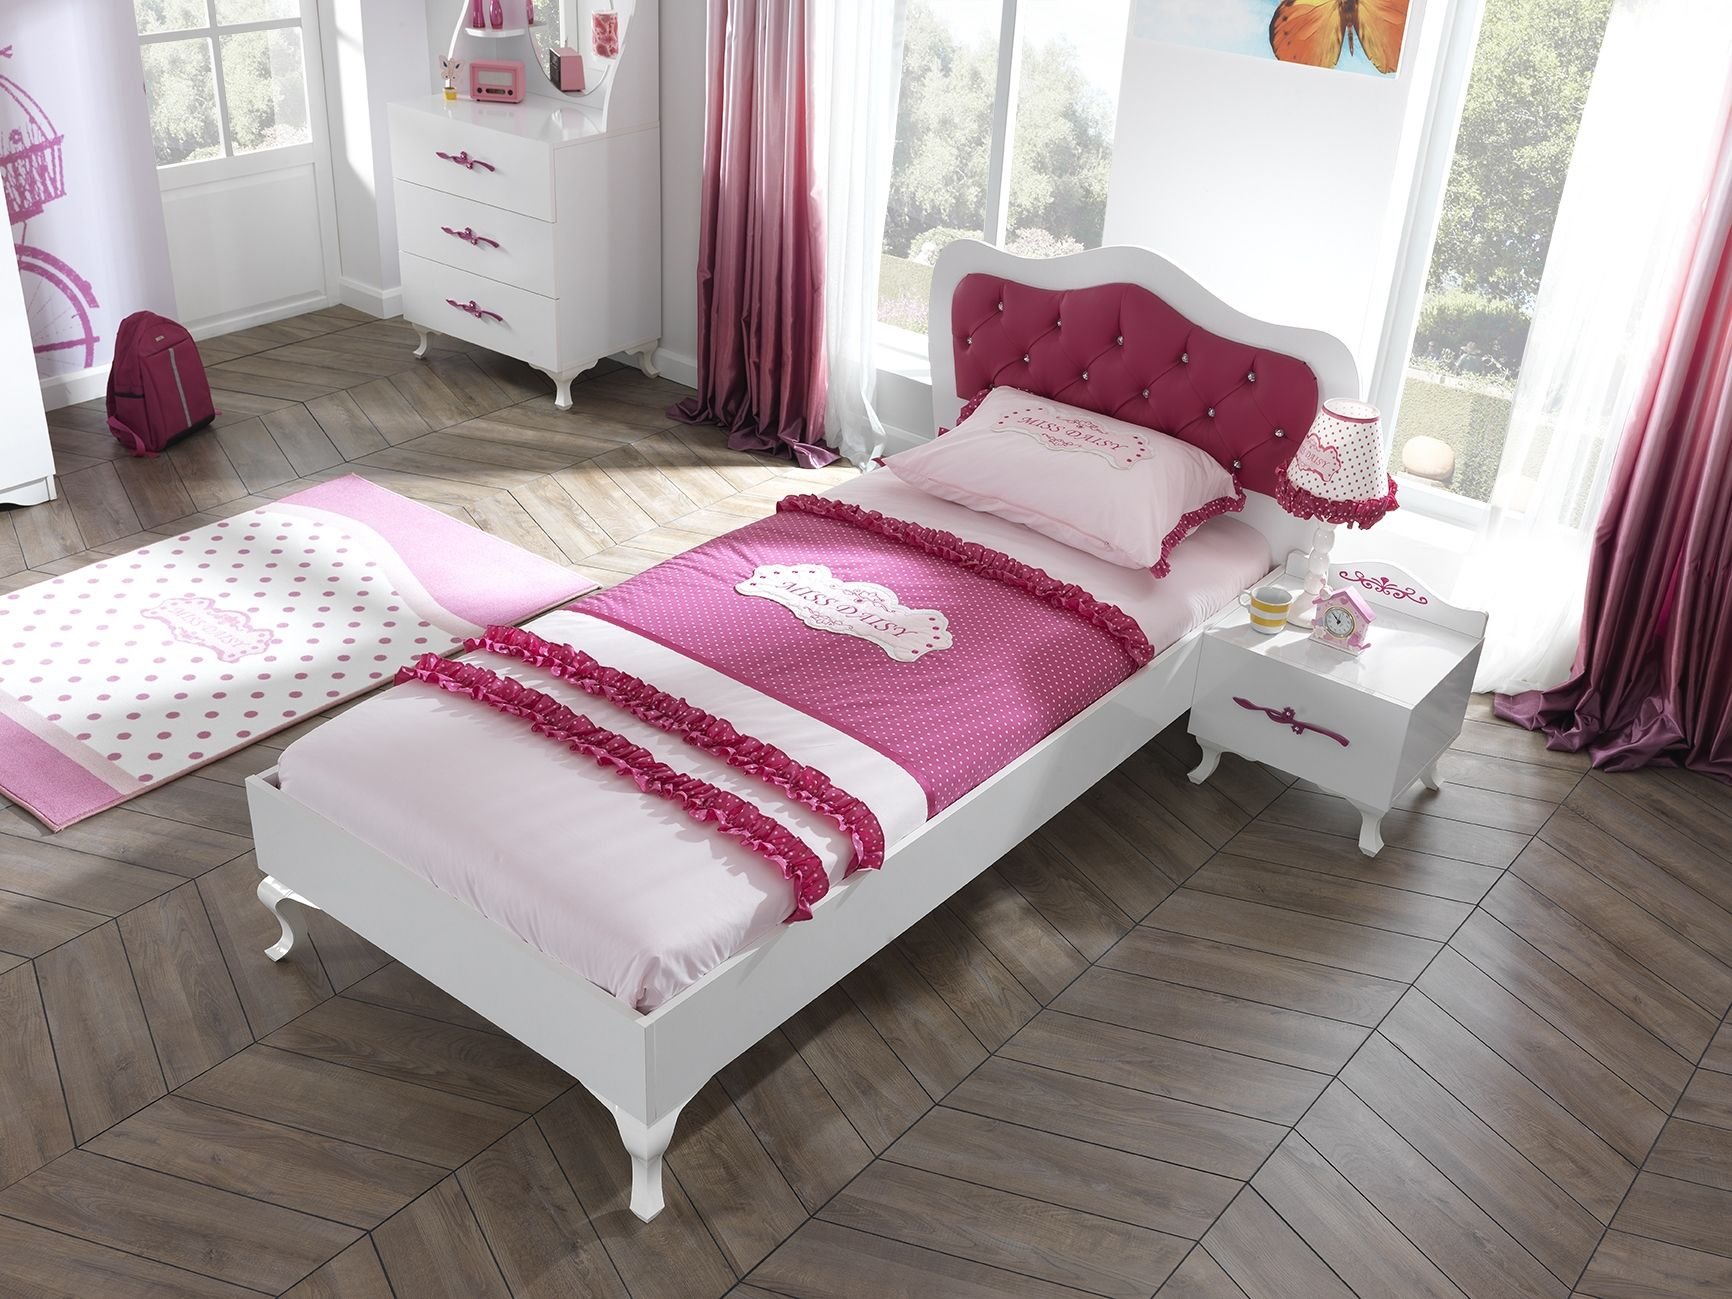 PAPATYA Bed Cover with pillowcase